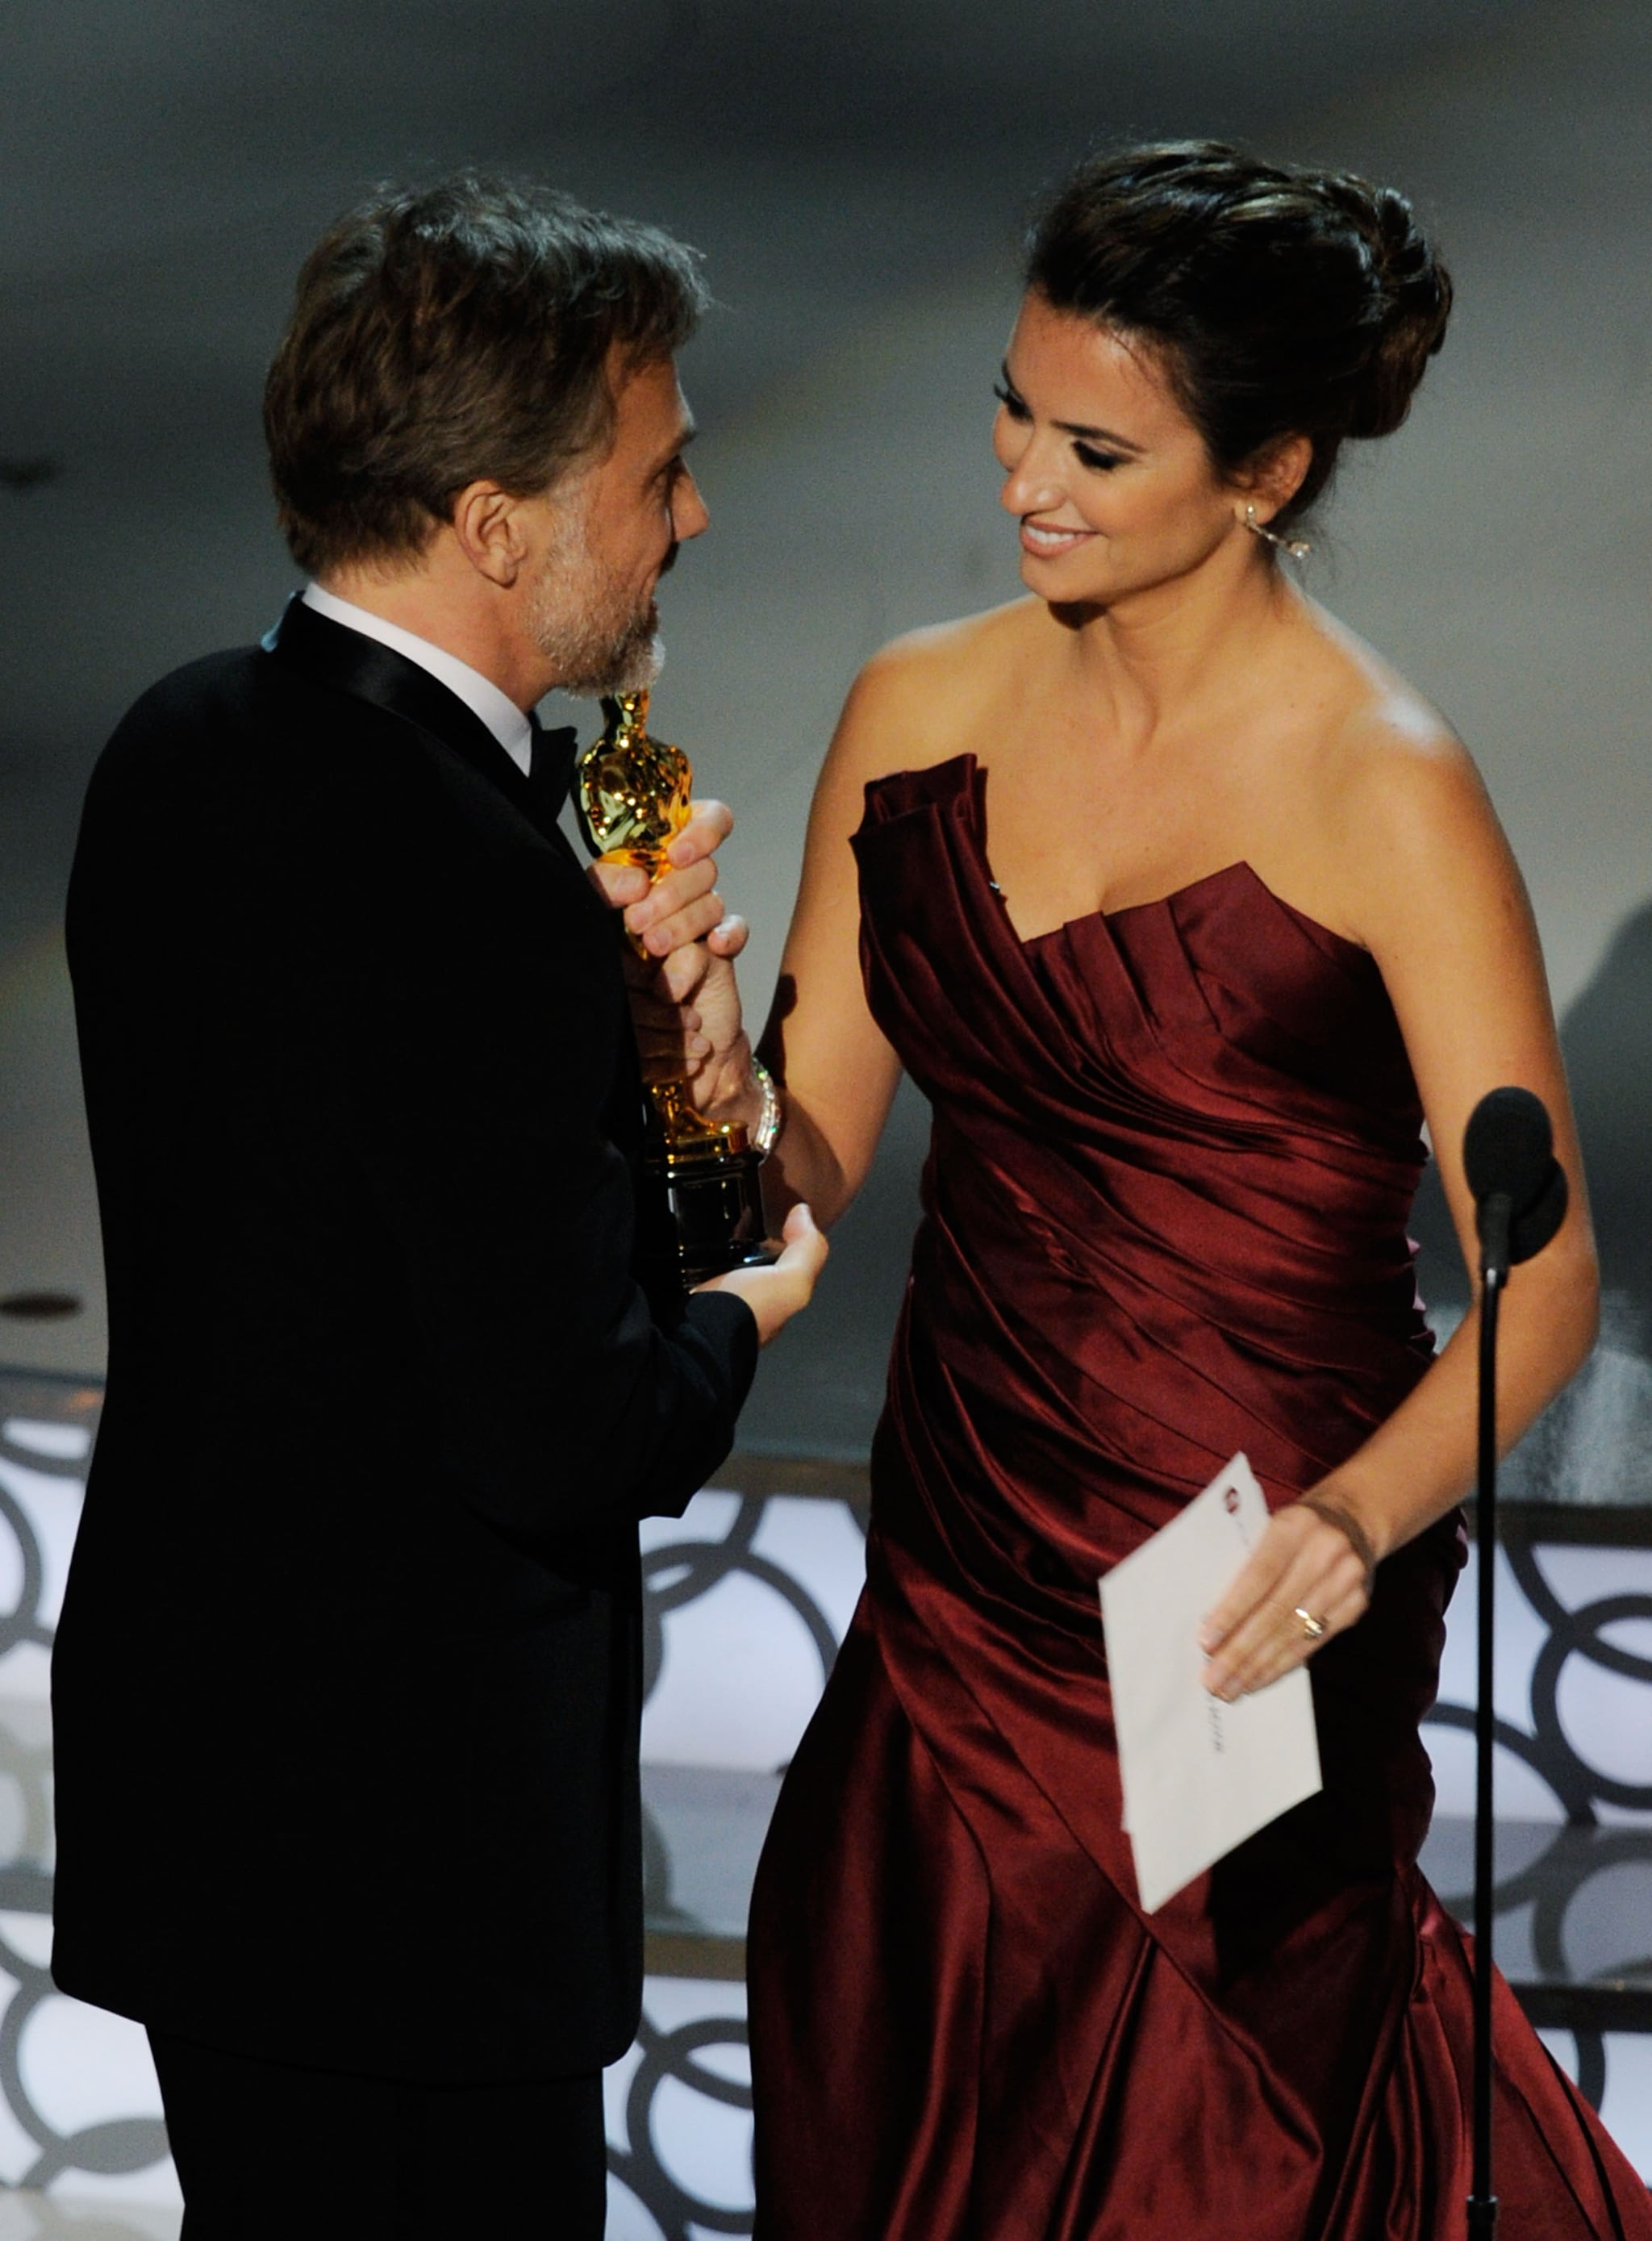 PopsugarCelebrityCarey MulliganPhotos of the 2010 Oscar Ceremony Including Sandra Bullock, Kristen Stewart, Mo'Nique, and More 2010-03-08 00:53:47The Oscars Finish Award Season With Surprises, Tears, and Fantastic Moments!March 8, 2010 by Molly Goodson3 SharesThe 2010 Oscars have come and gone with The Hurt Locker standing out as the night's big winner. The acting awards went to this season's favorites — Sandra Bullock for The Blind Side, Mo'Nique for Precious, Jeff Bridges for Crazy Heart, and Christoph Waltz for Inglourious Basterds. The show kicked off with Neil Patrick Harris's opening number, which was the perfect lead-in to Alec Baldwin and Steve Martin playing off each other throughout the night. Young Hollywood had an exciting evening as well with presenters including Taylor Lautner and Kristen Stewart, who both chatted backstage about being a bit nervous before stepping out. Kristen got to have a moment with her dad on the way in, which gave us a super sweet sighting. Zac Efron and Anna Kendrick a - 웹